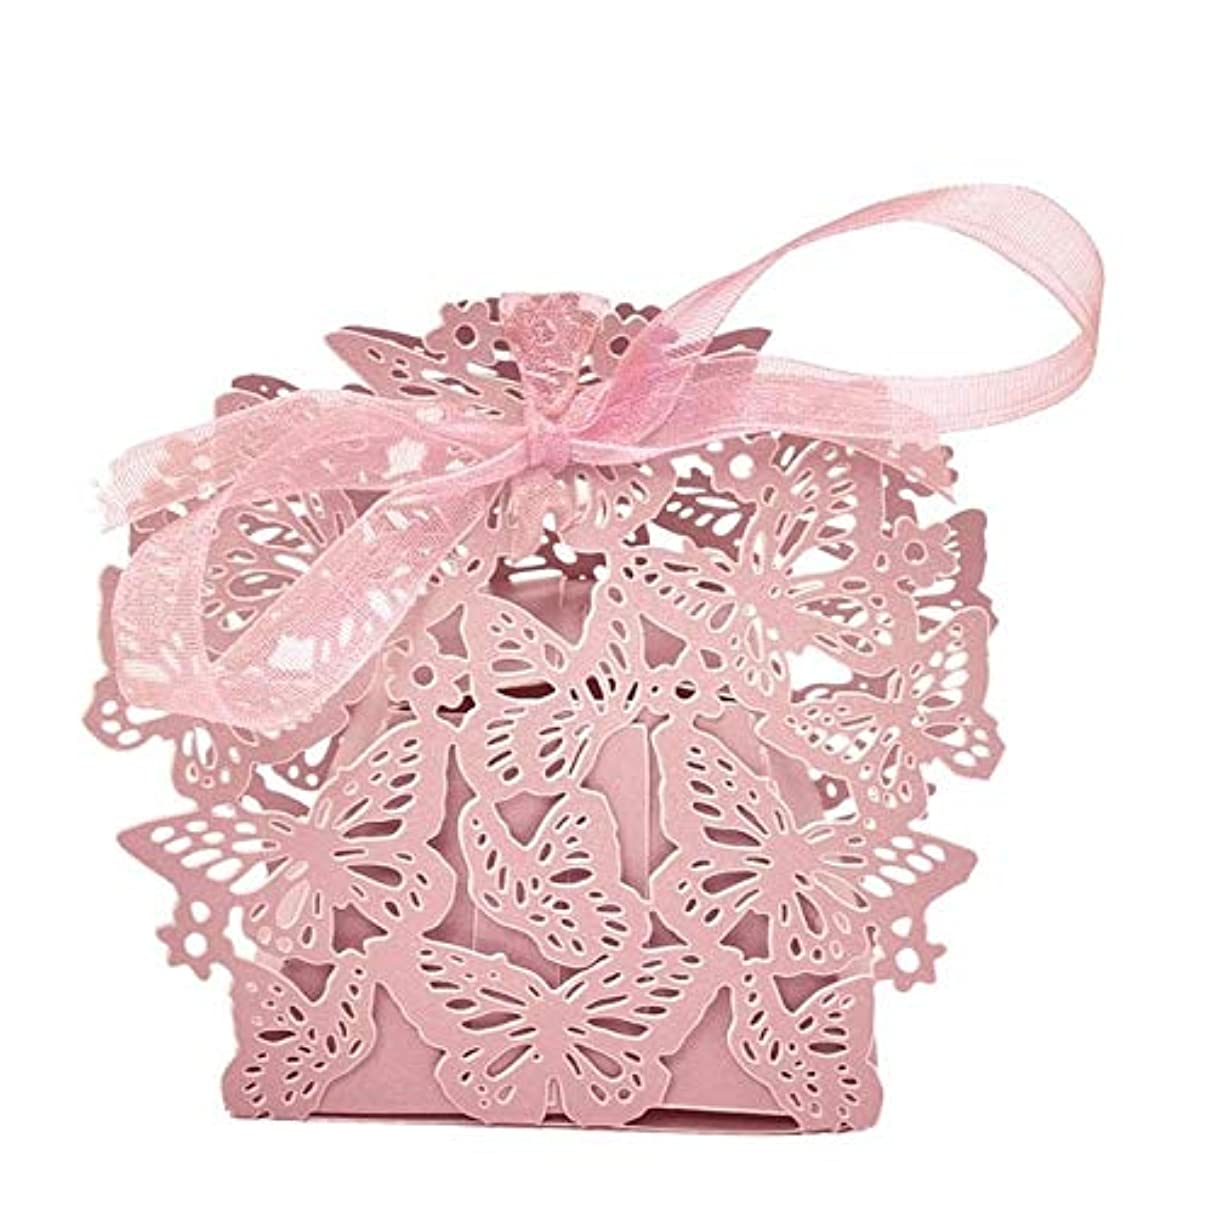 MOJITO LIVING PTE 10pcs Butterfly Ribbon Gift Candy Paper Box Wedding Party Favor Paper Bag Mr & Mrs Wedding Candy Box Sweets Gift Favor Boxes